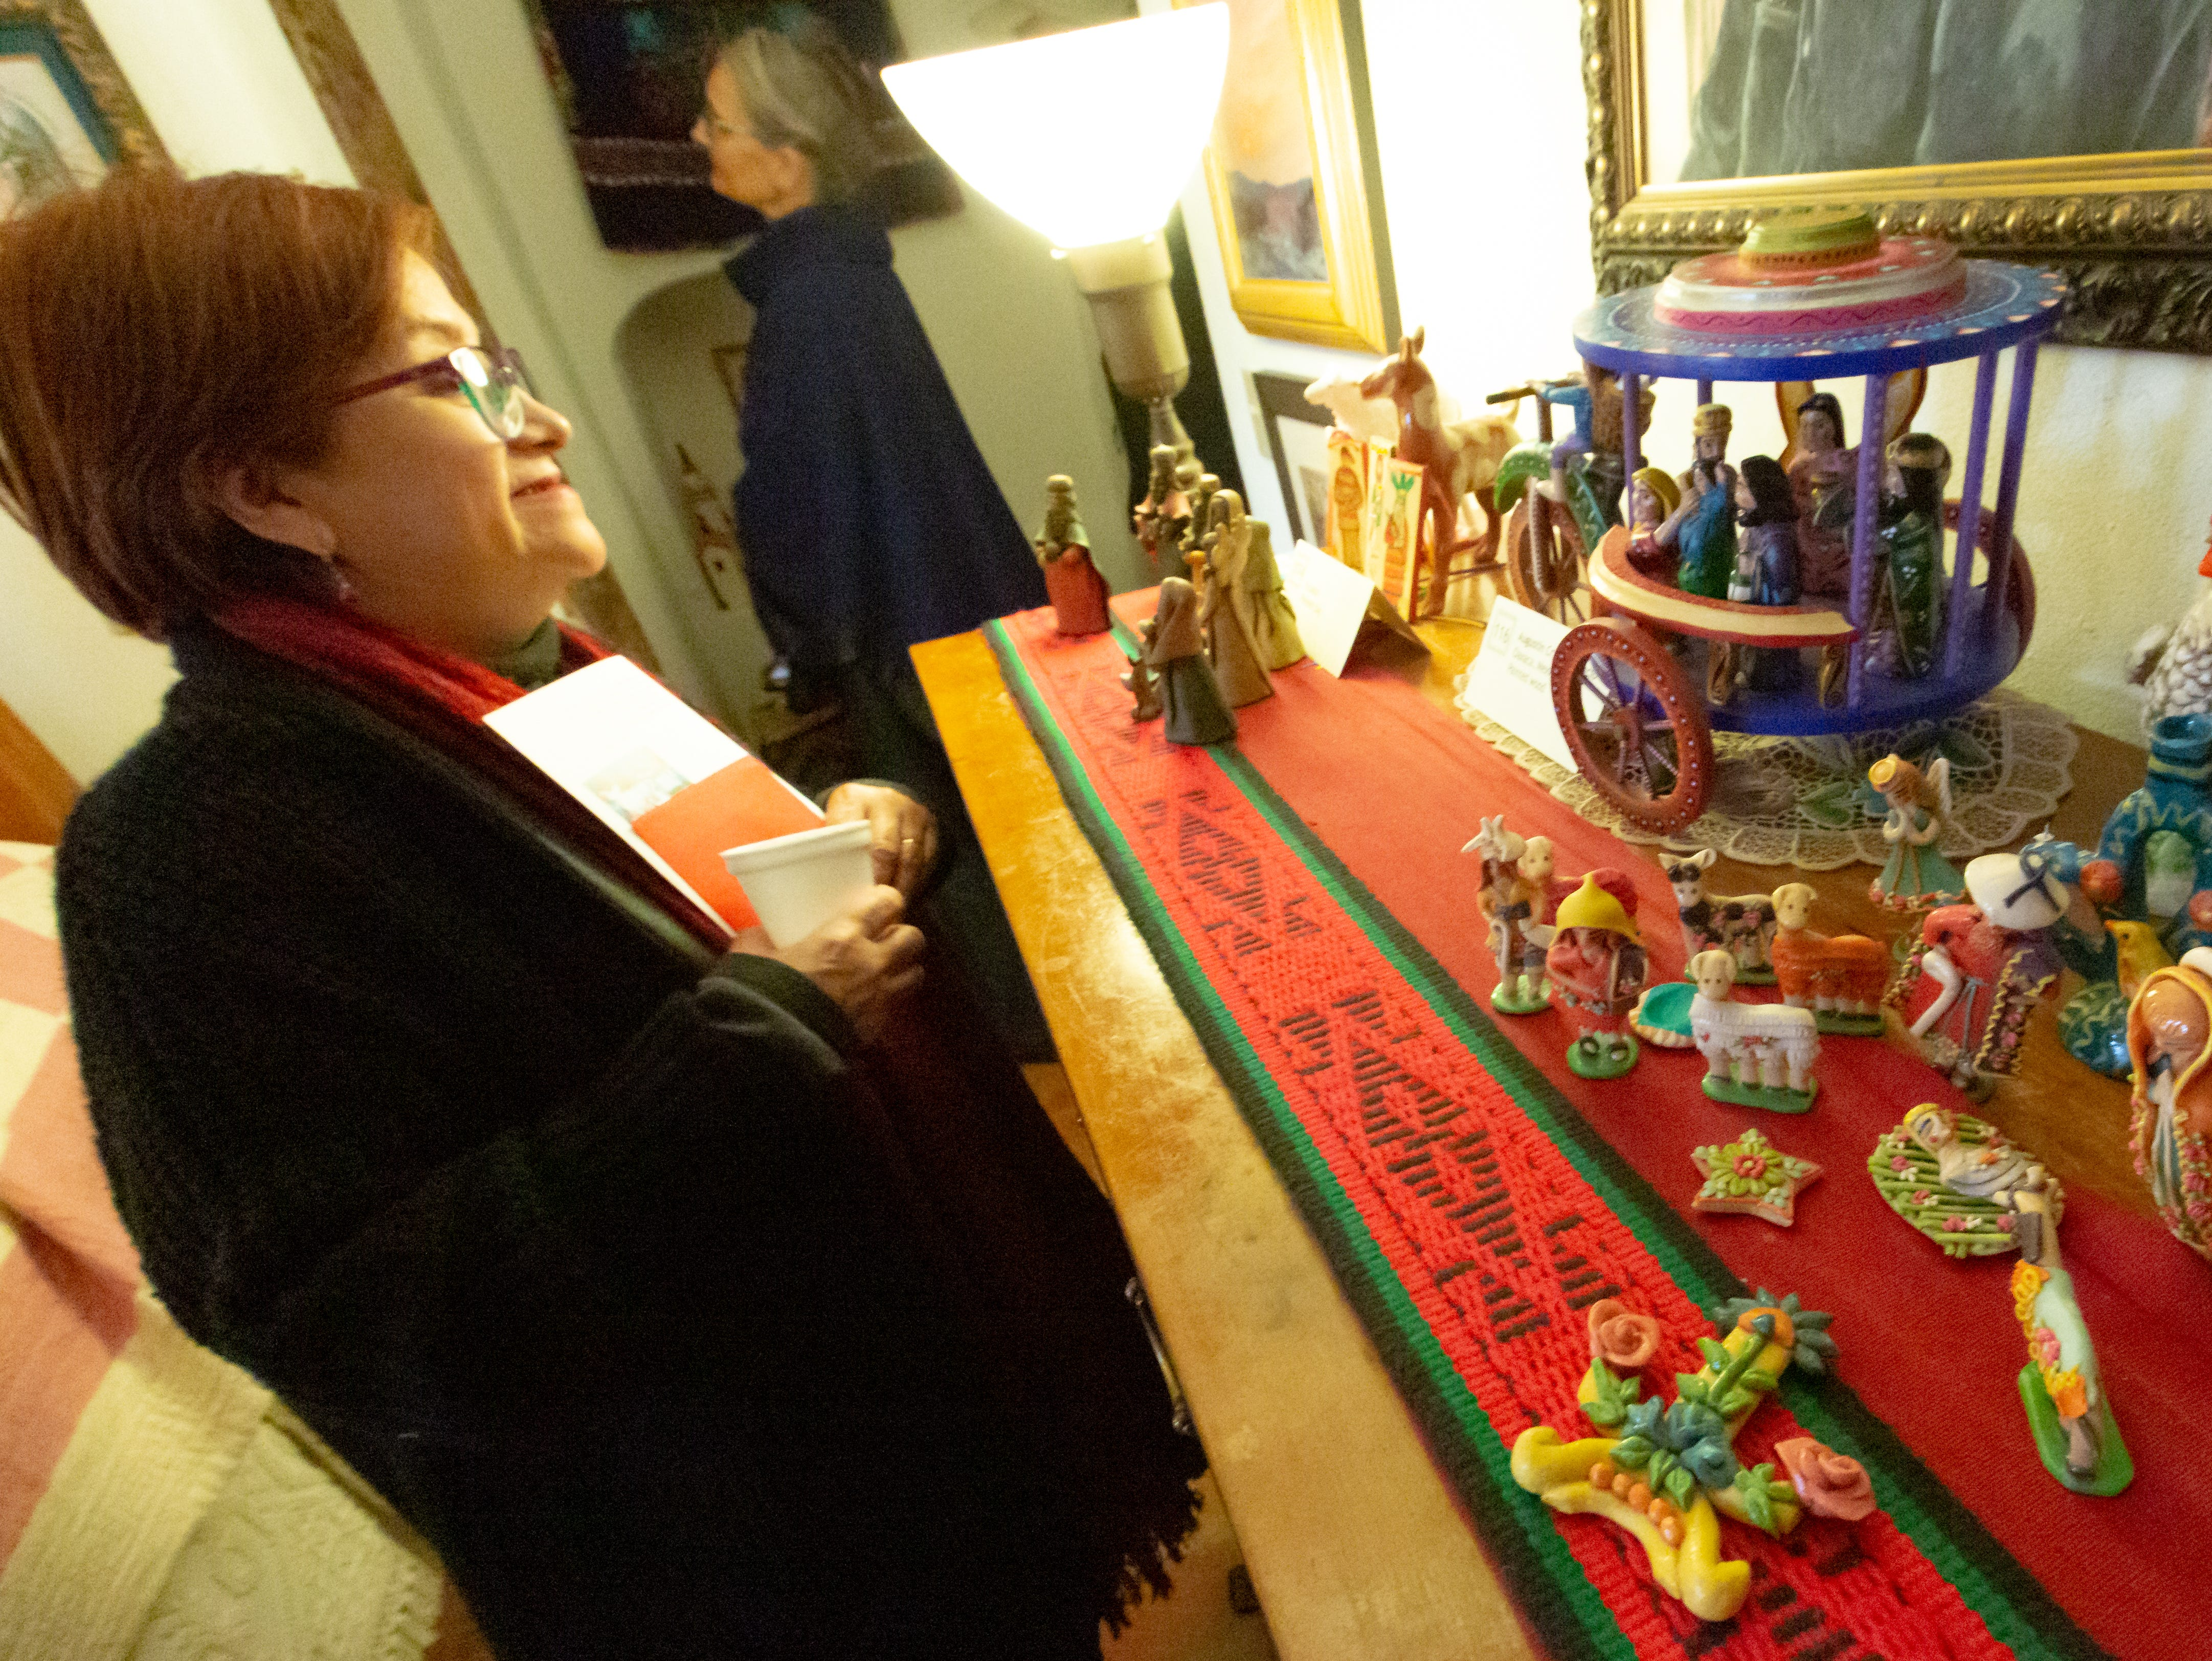 Gloria Burciaga looks at nativity scenes on Sunday, December 16, 2018, during Nacimiento Open House with J. Paul Taylor at the Taylor-Barela-Reynolds-Mesilla Historic Site located in the Mesilla Plaza.